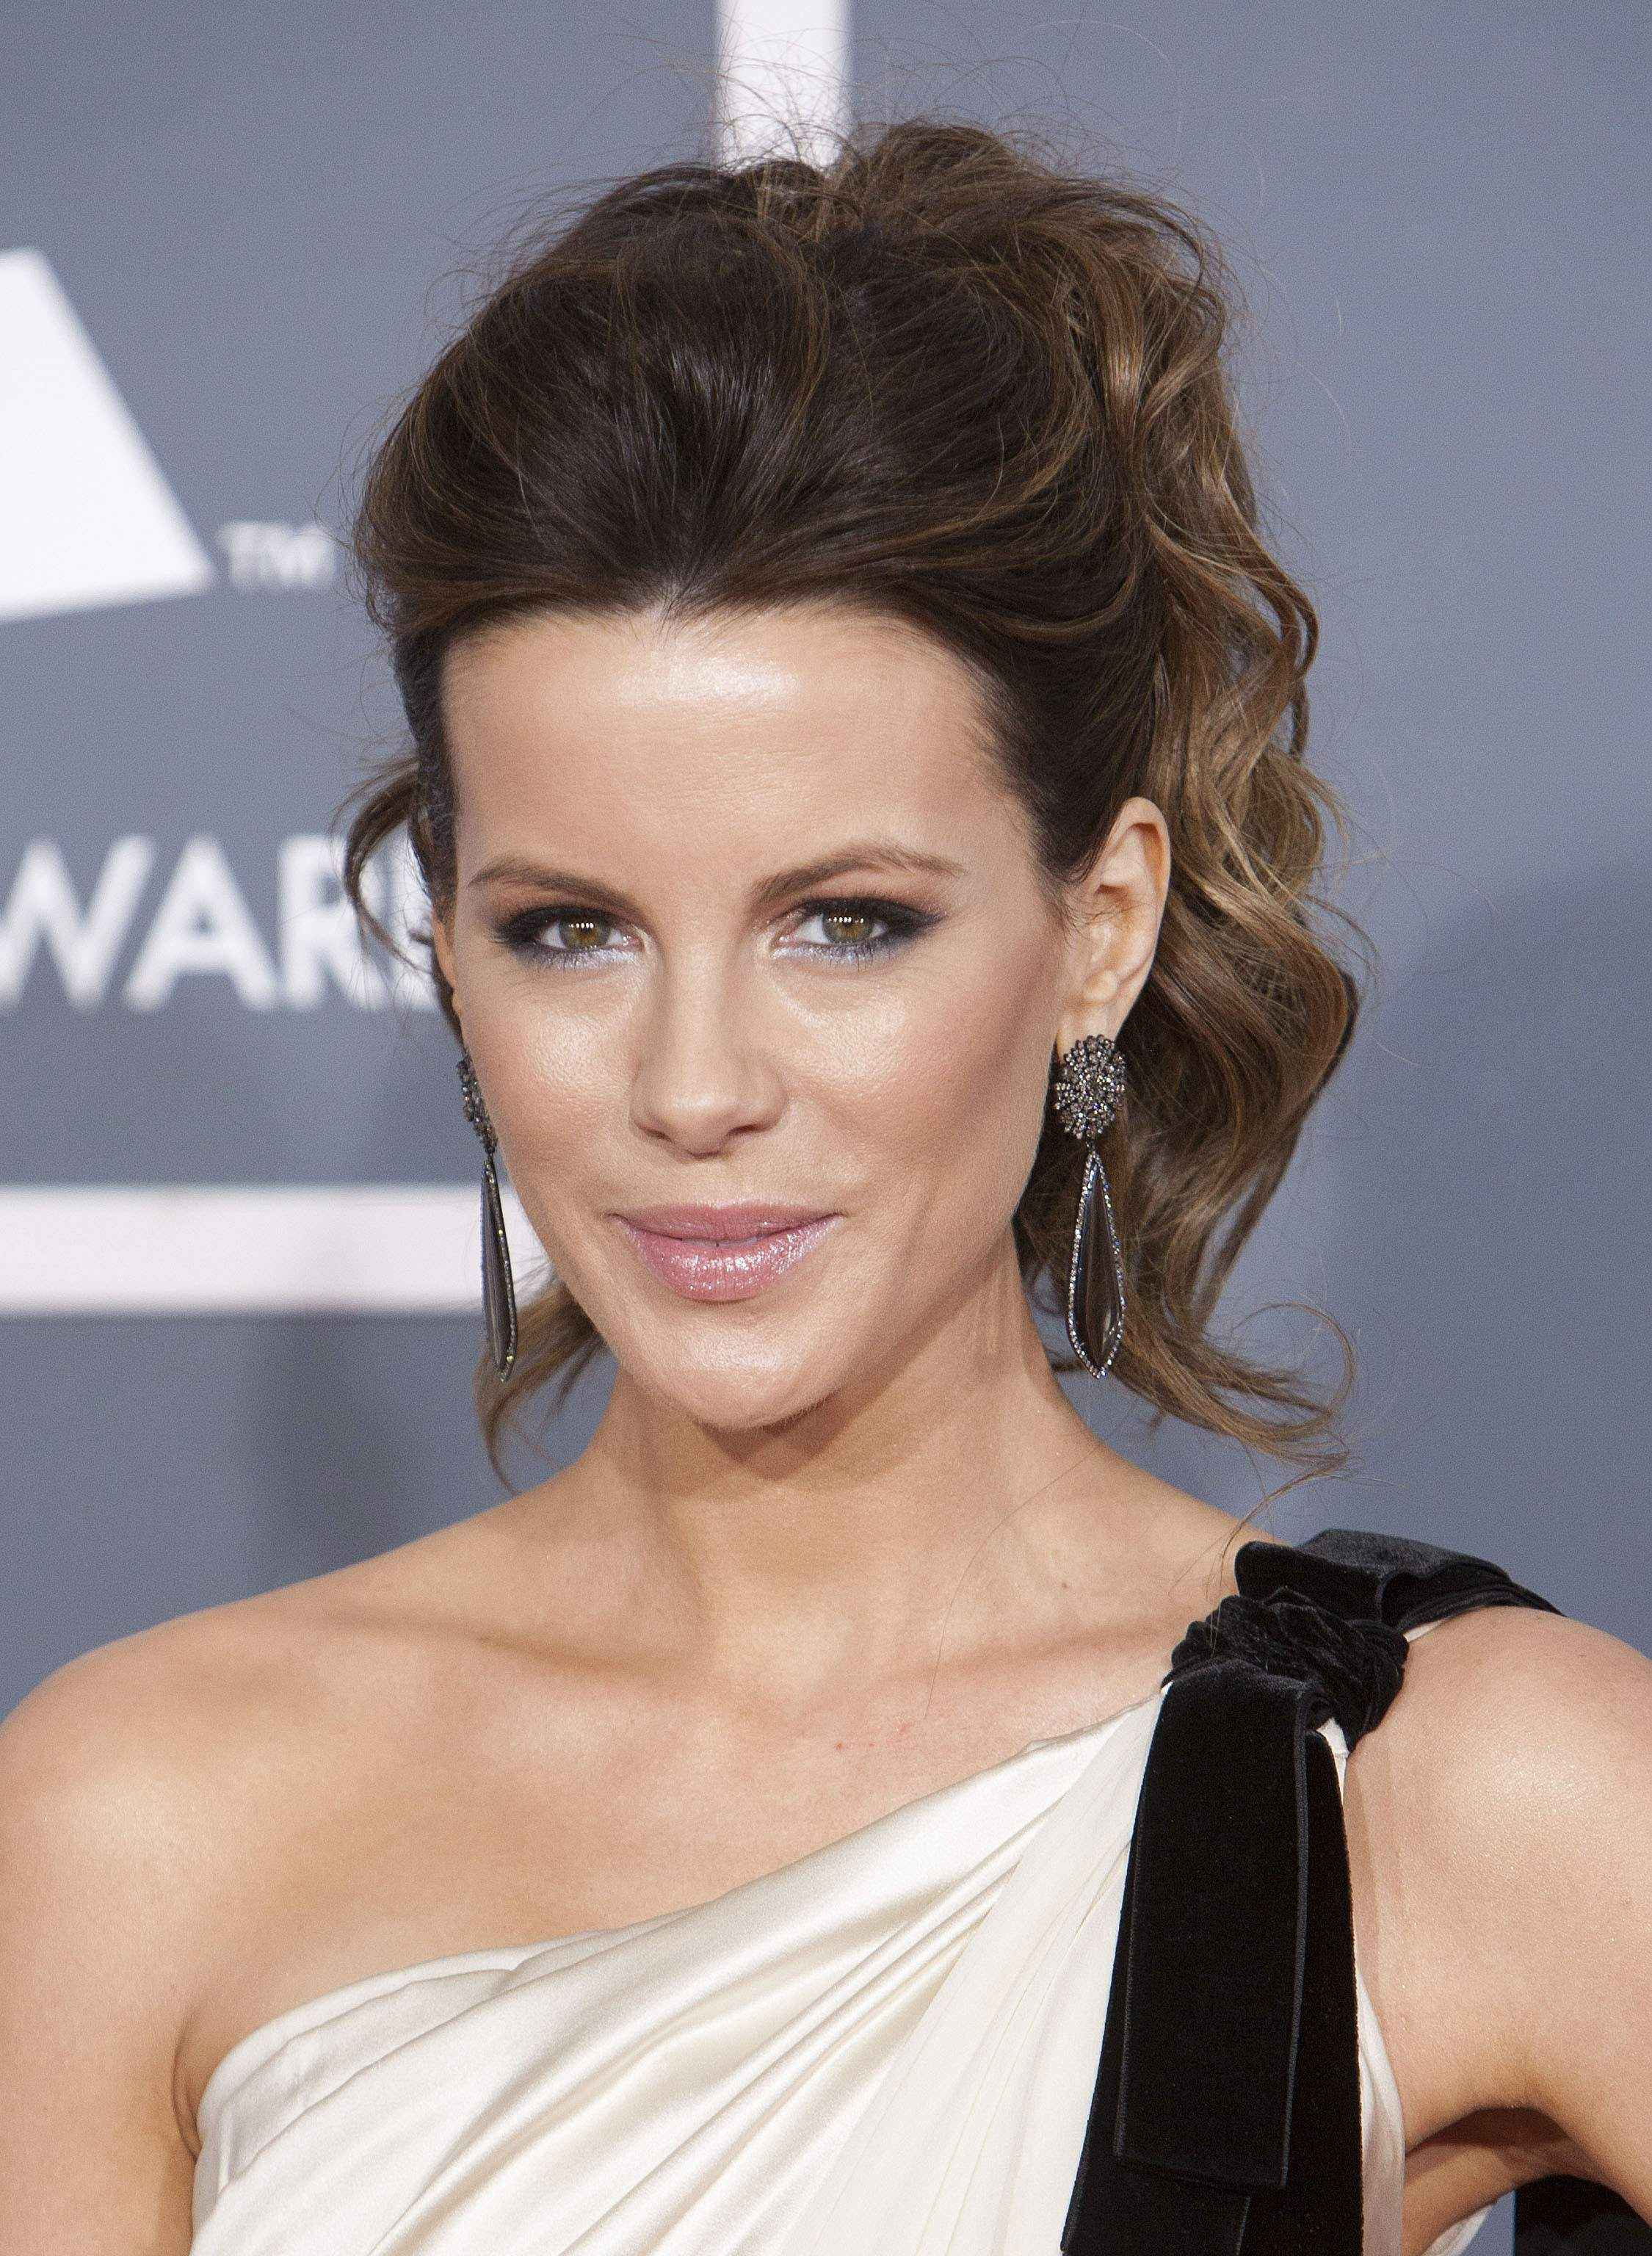 Kate Beckinsale photo #351352